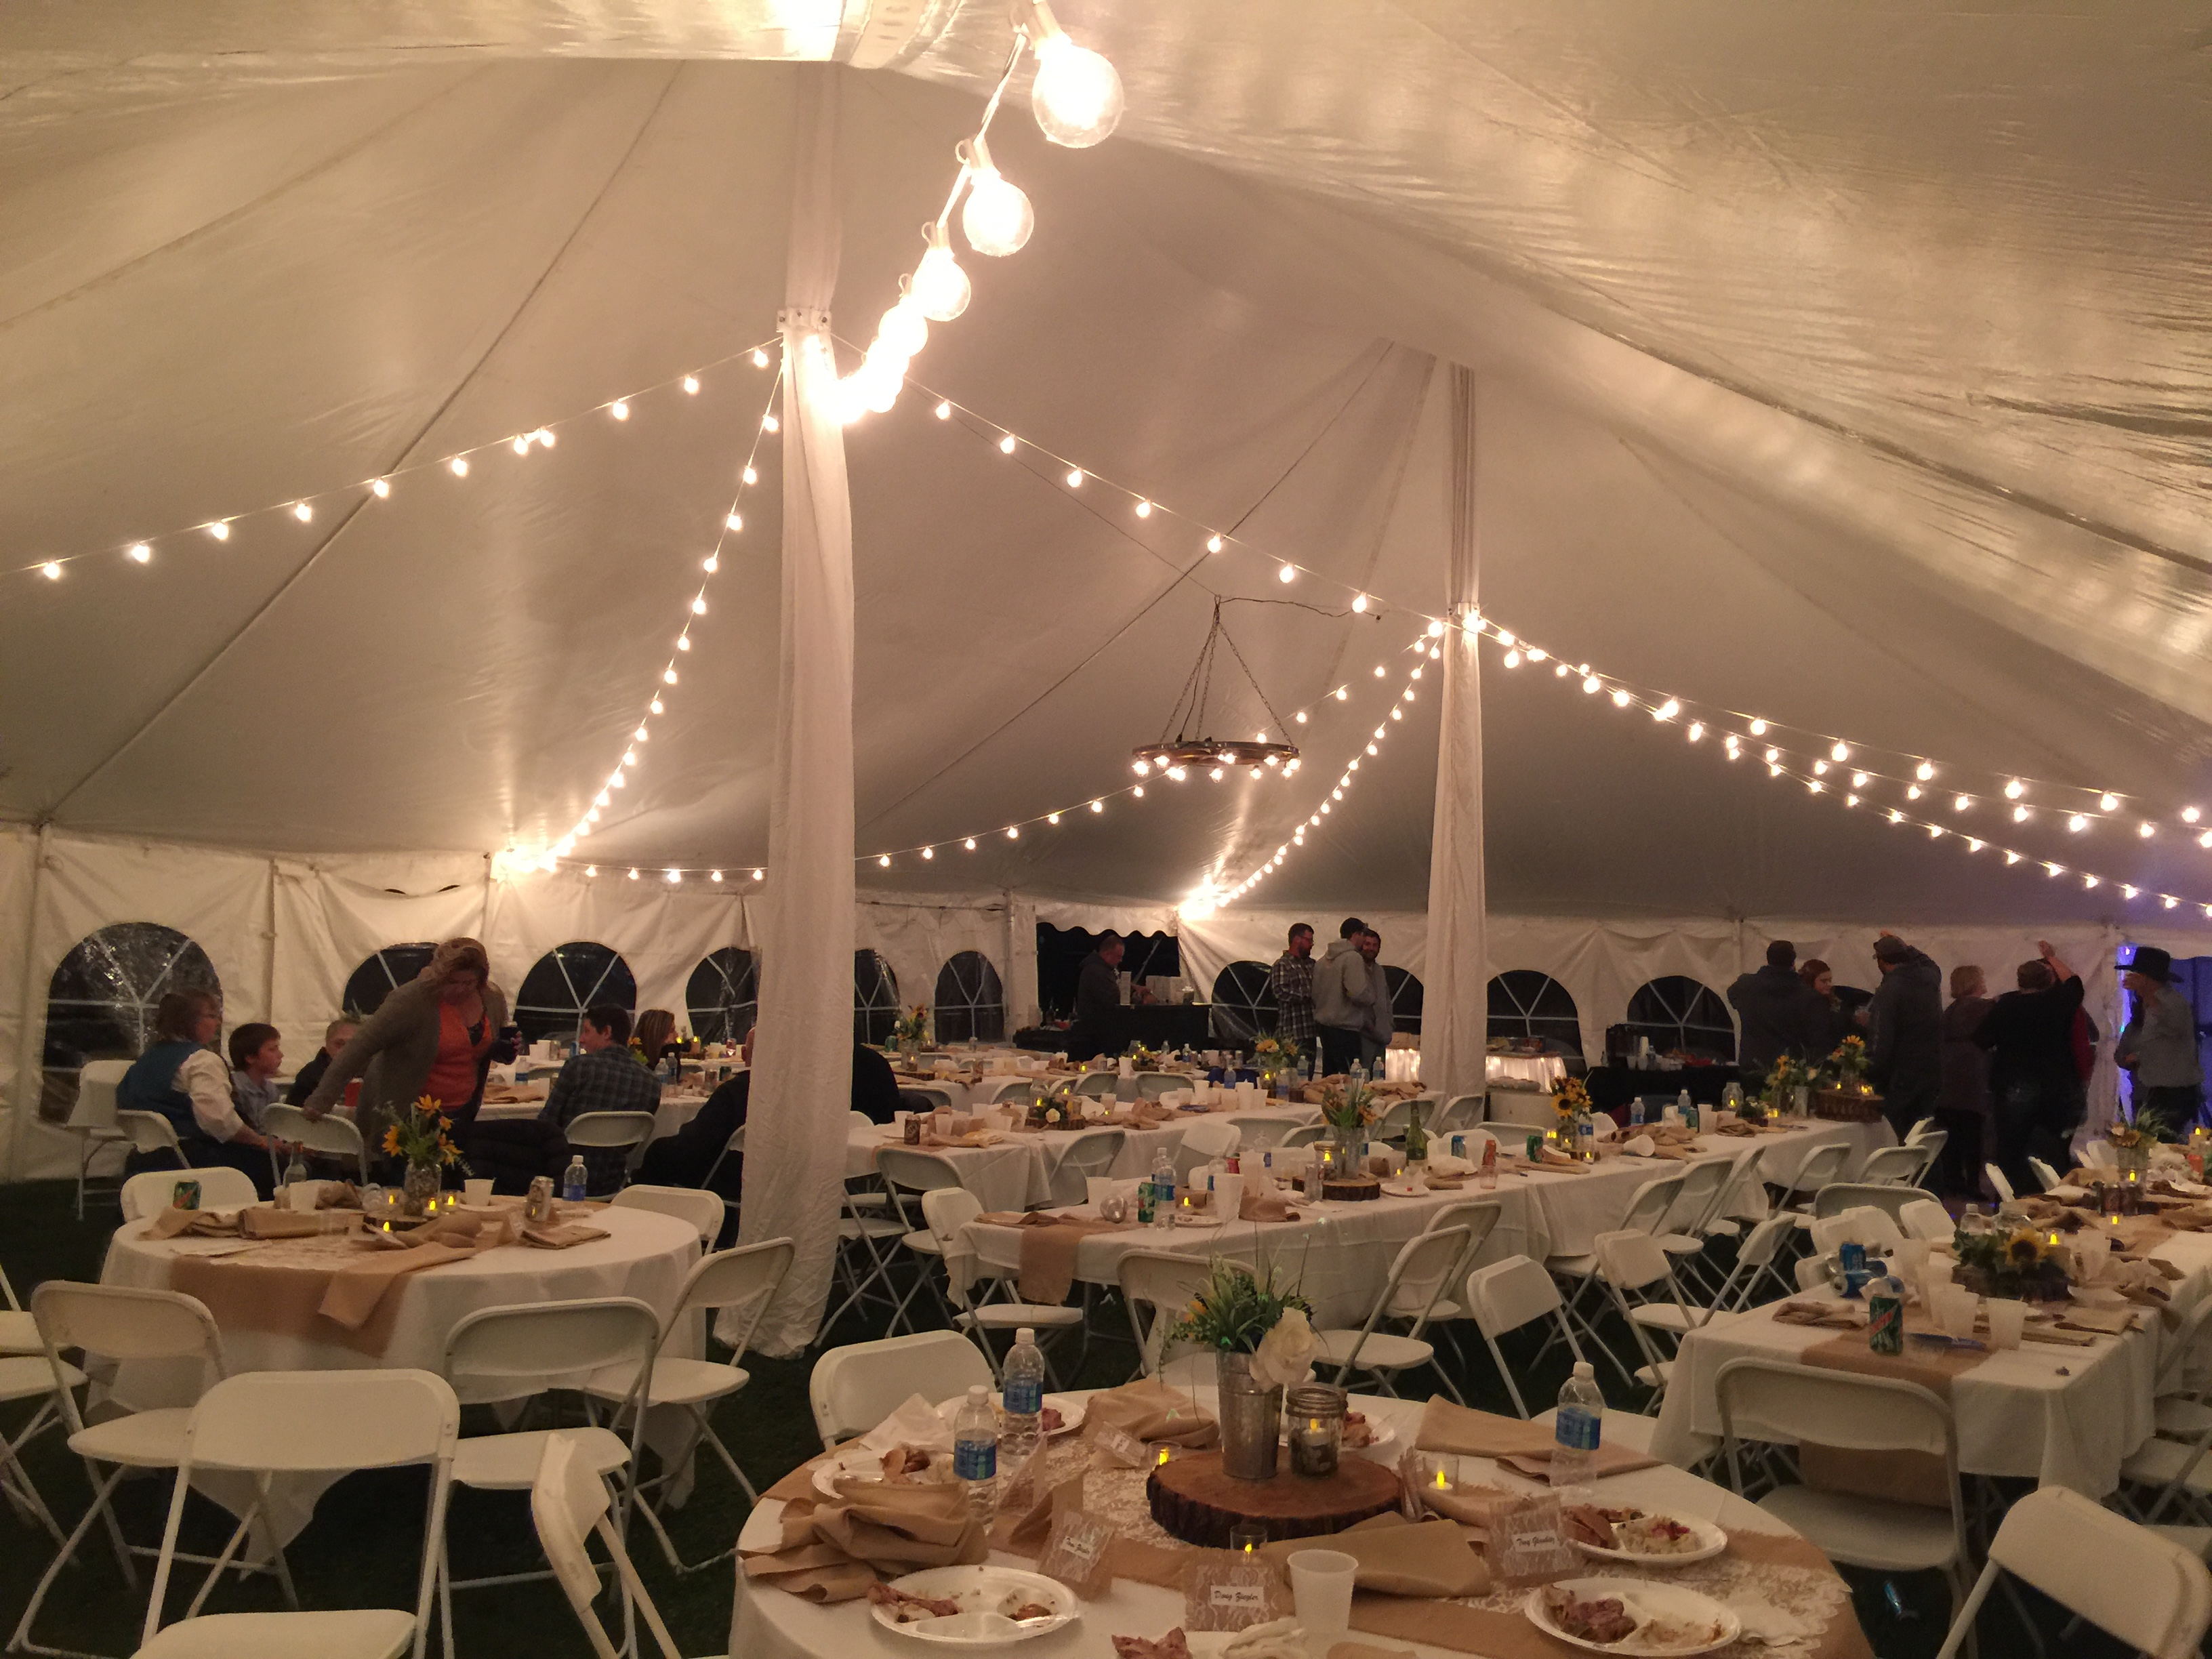 40 60 Pole Tent Wedding 4